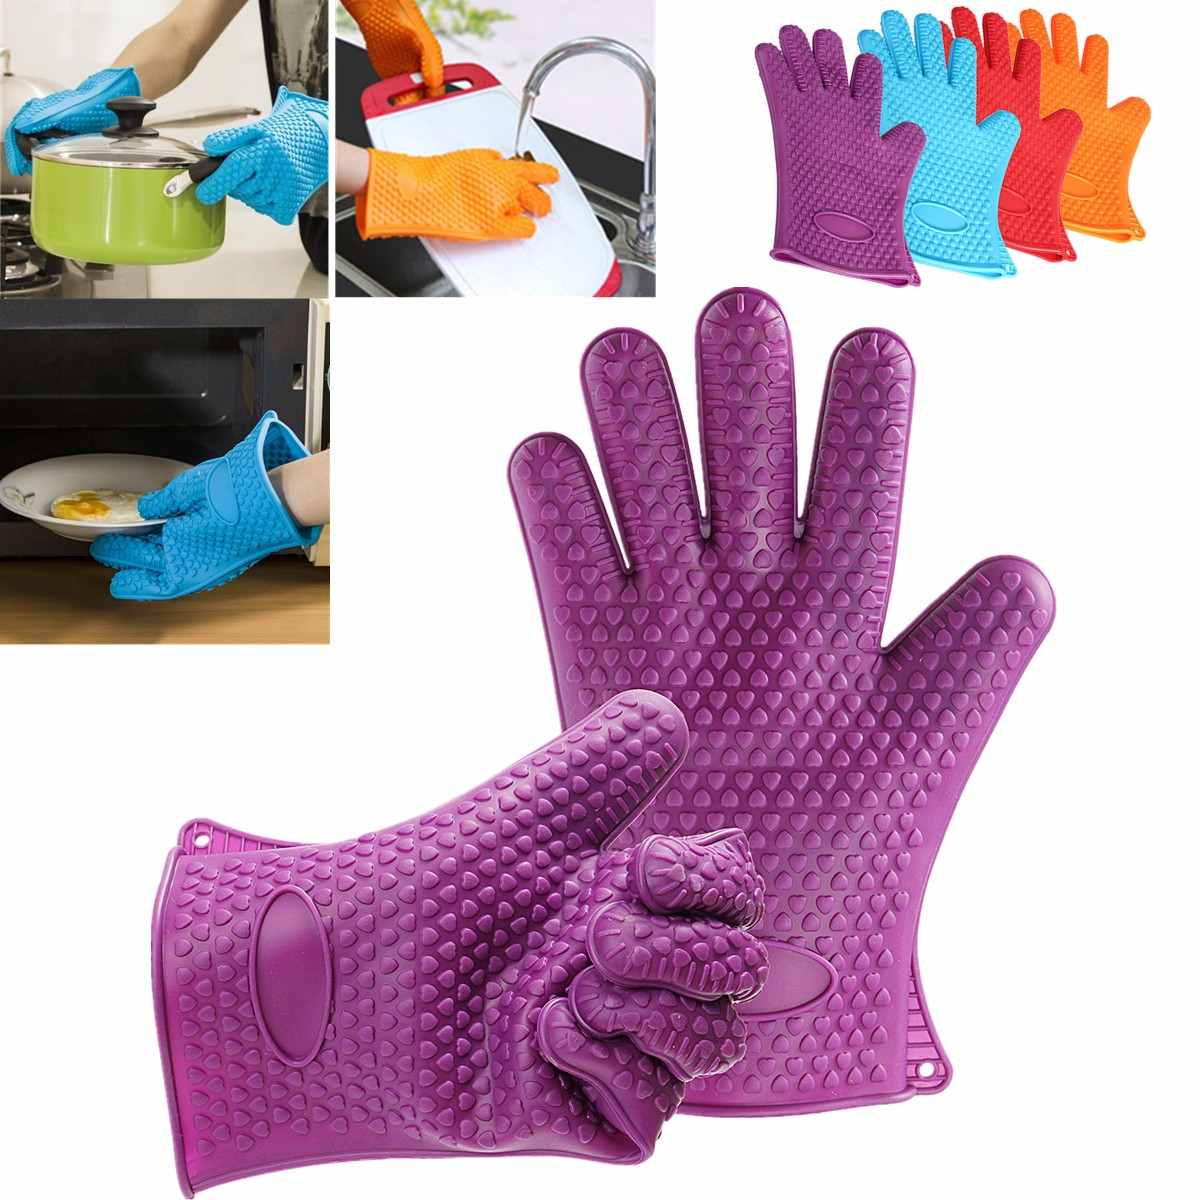 1 Pair food grade Heat Resistant Silicone Kitchen barbecue oven glove Cooking BBQ Grill Glove Oven Mitt Baking Protective gloves women sexy one piece swimsuit padded monokini female one piece swim suits halter swimwear push up trikini plus size bathing suit